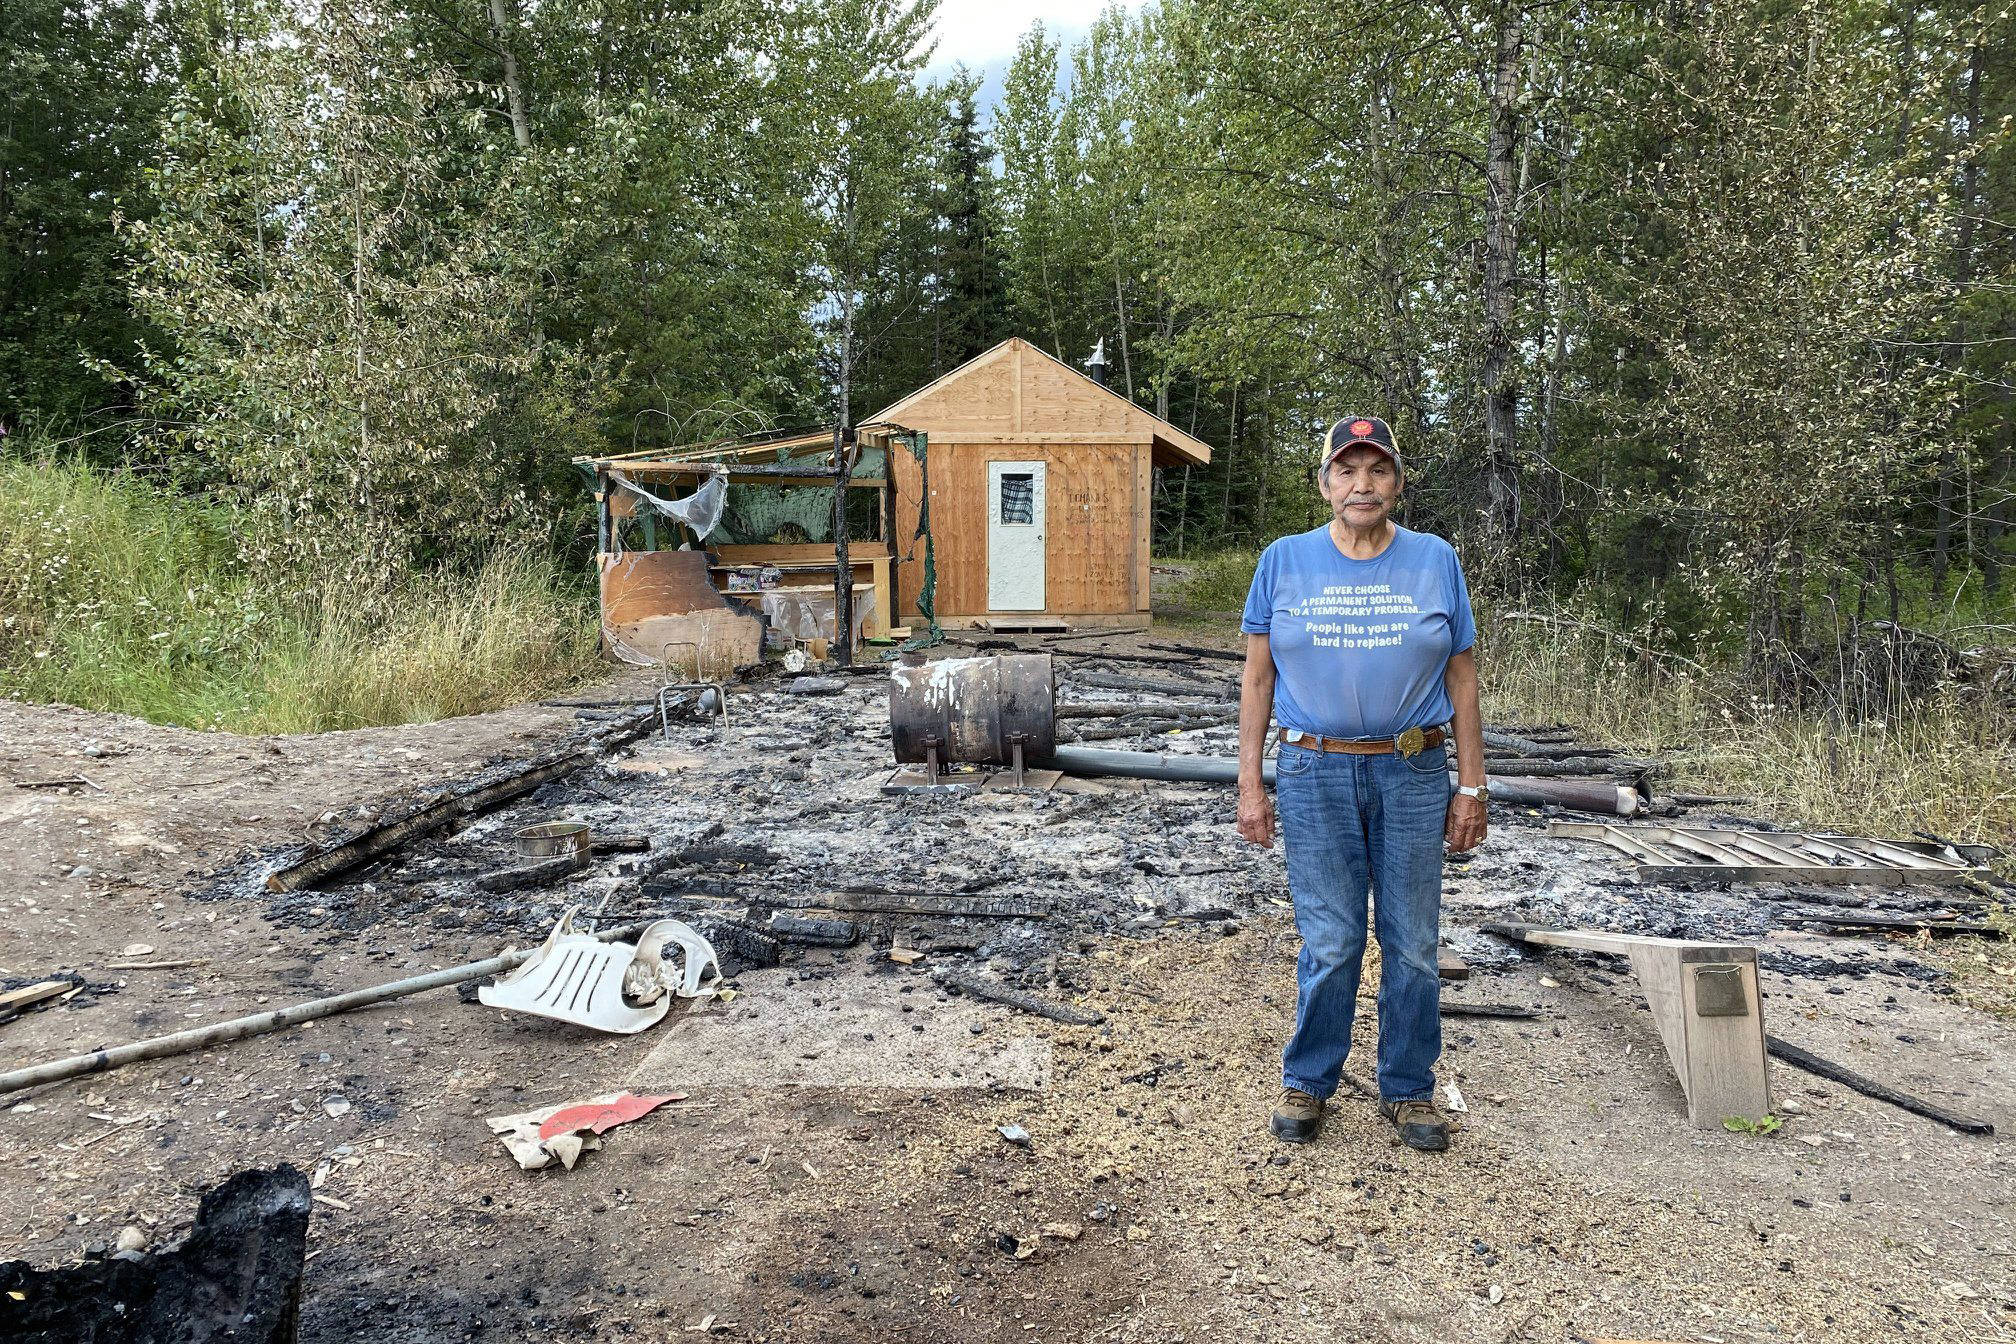 Chief Gisday'wa with the remains of a structure alongside the Morice Forest Service Road burned in an arson fire overnight from Aug. 14 to Aug. 15. Two suspects have now been identified. (Gidimt'en Clan photo)